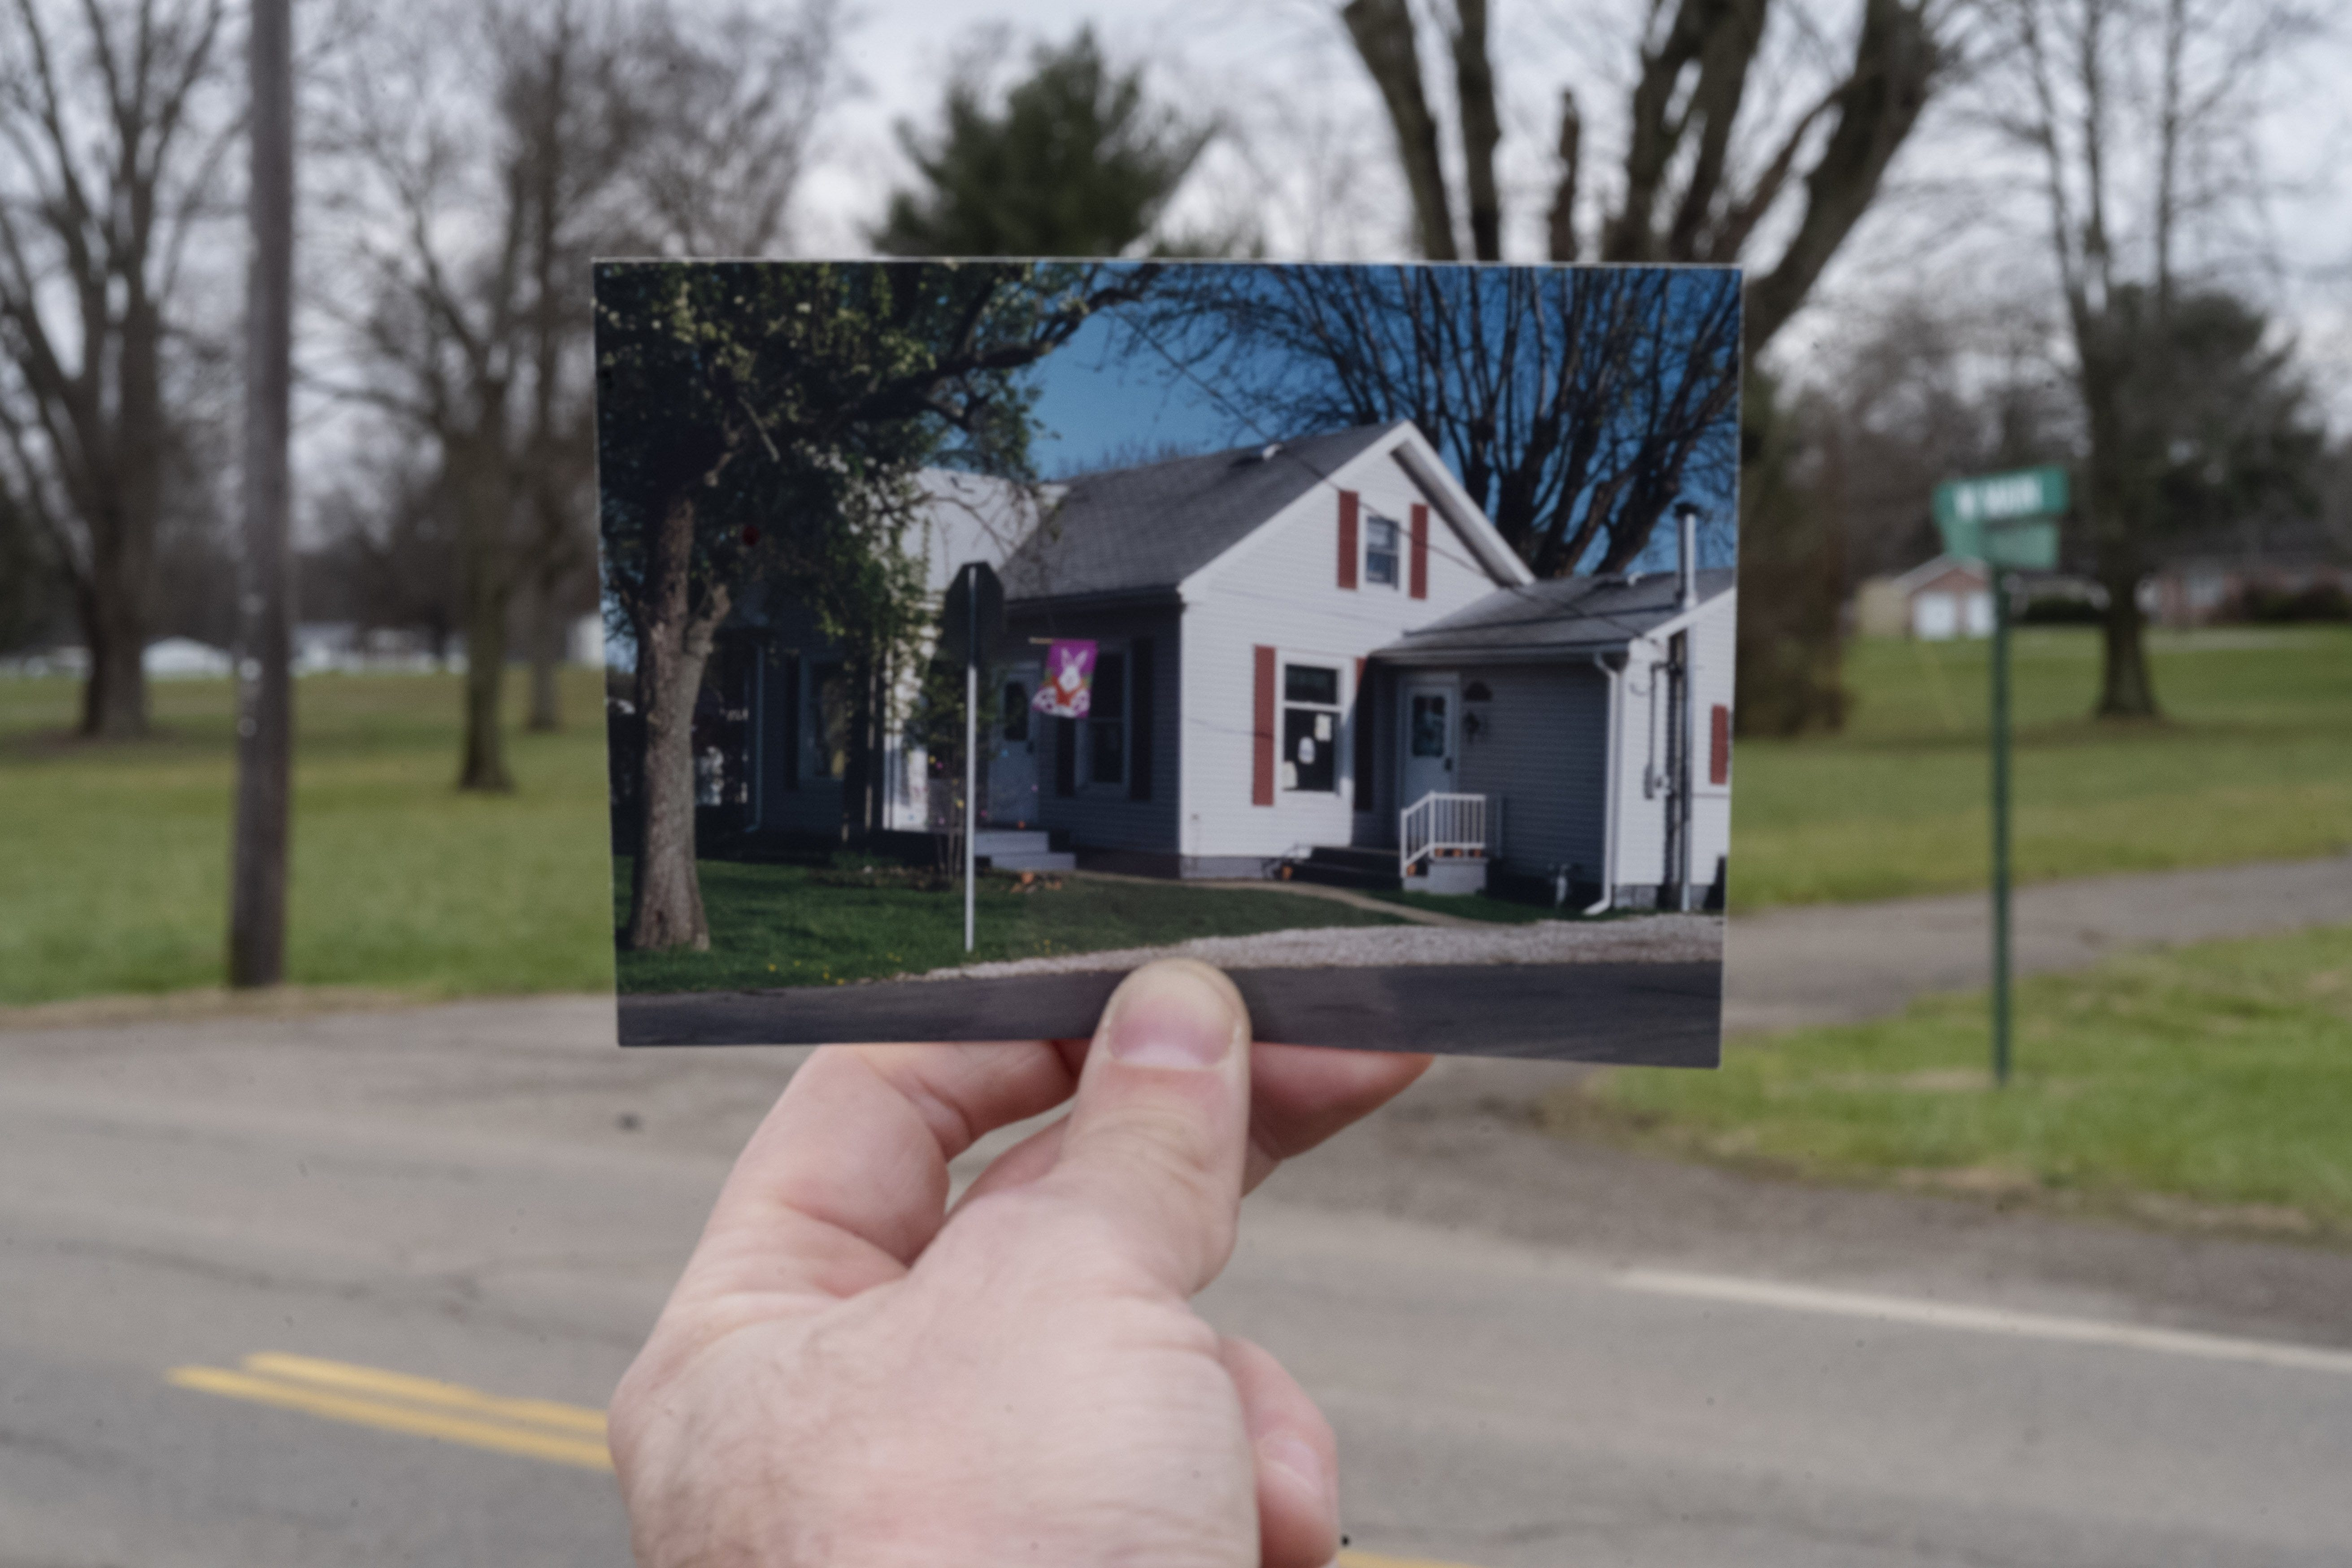 A photograph of Jennifer Harrison's former home at 201 St. Rt. 554 seen at the present day intersection of St. Rt. 554 and Fourth St., on Monday, Dec. 21, 2020 in Cheshire, Ohio.